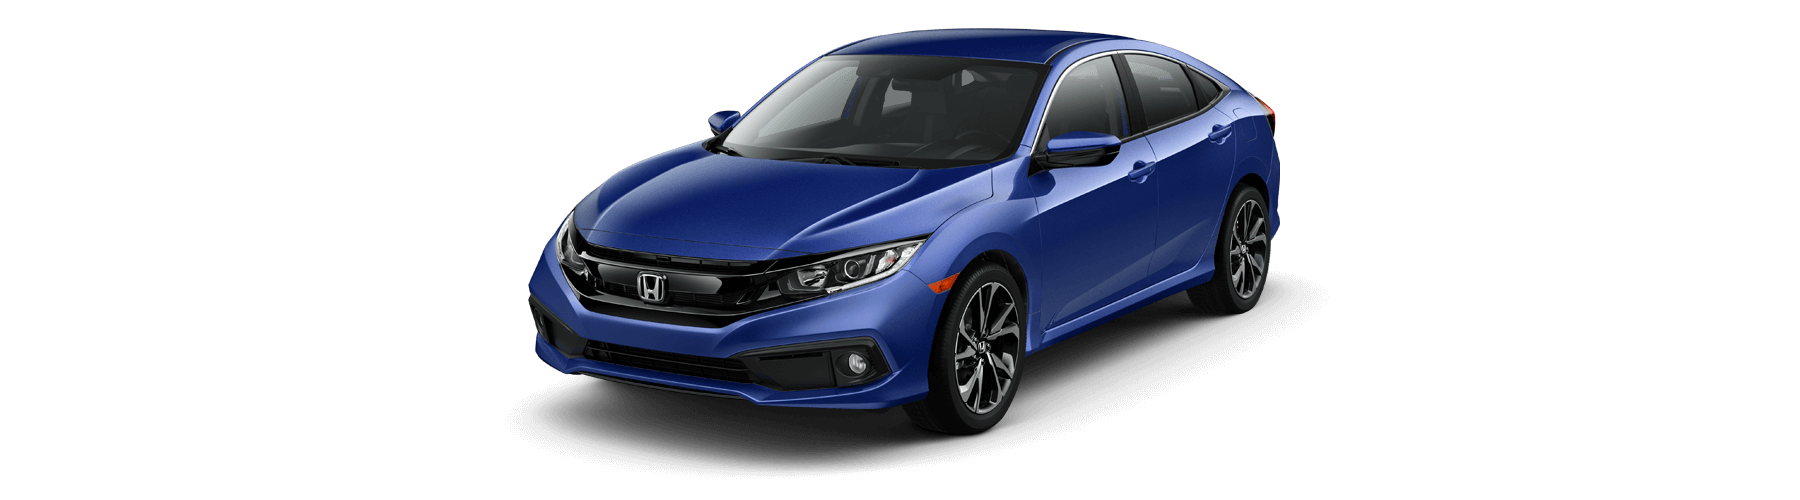 2019 Honda Civic Sedan Front Angle